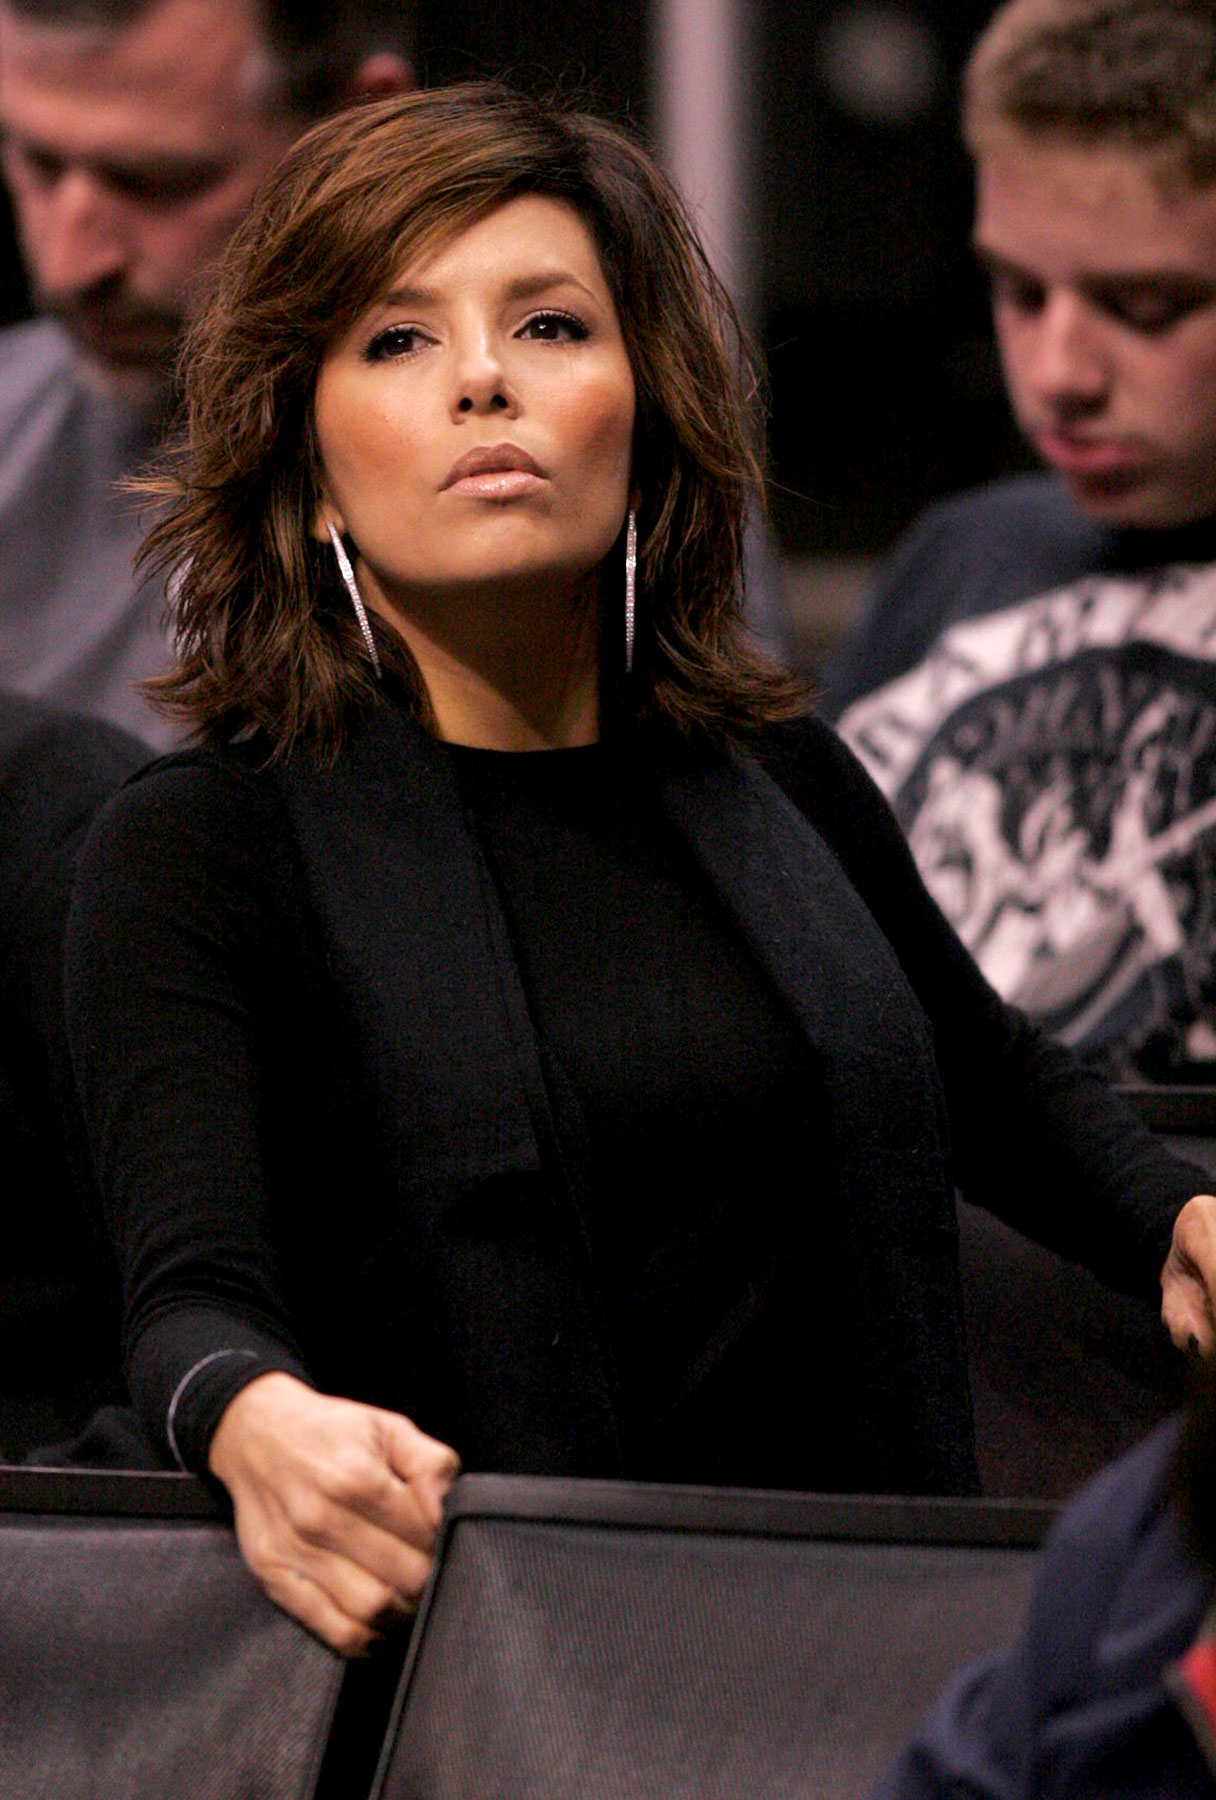 Eva Longoria: Clipped for the Clippers